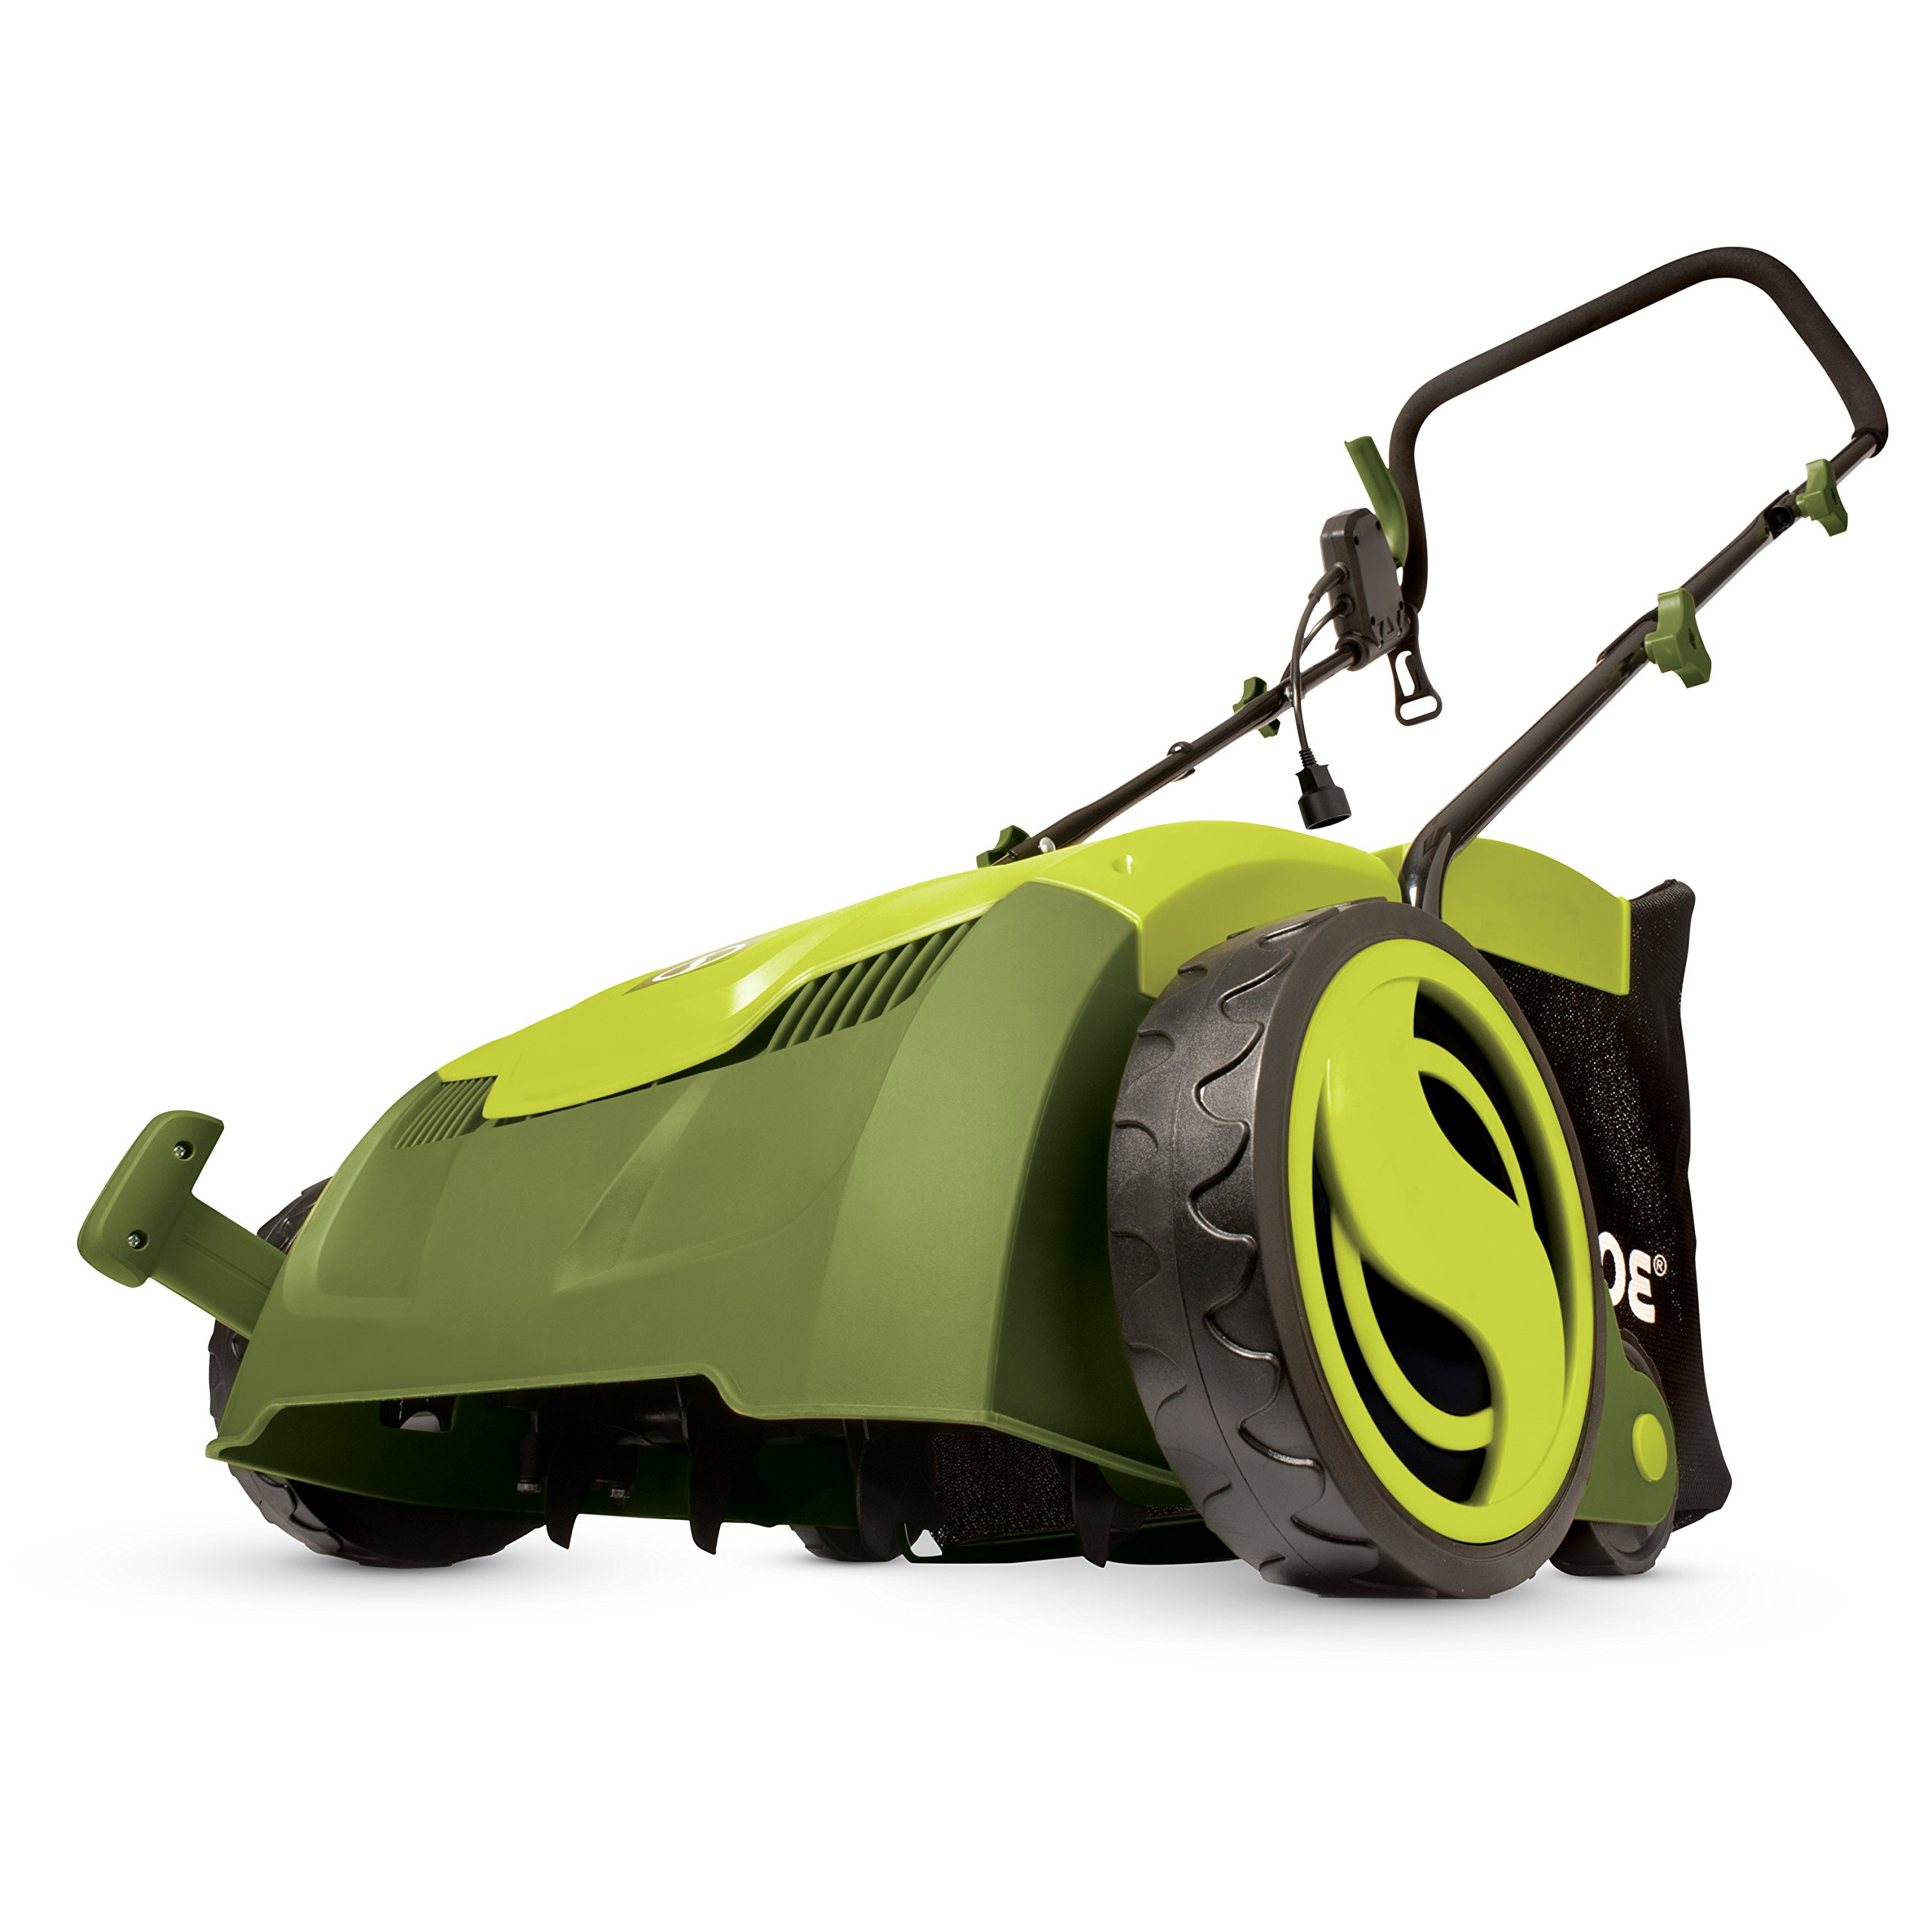 "Sun Joe AJ801E 12 Amp 13"" Electric Scarifier Plus Lawn Dethatcher with Collection Bag product image"